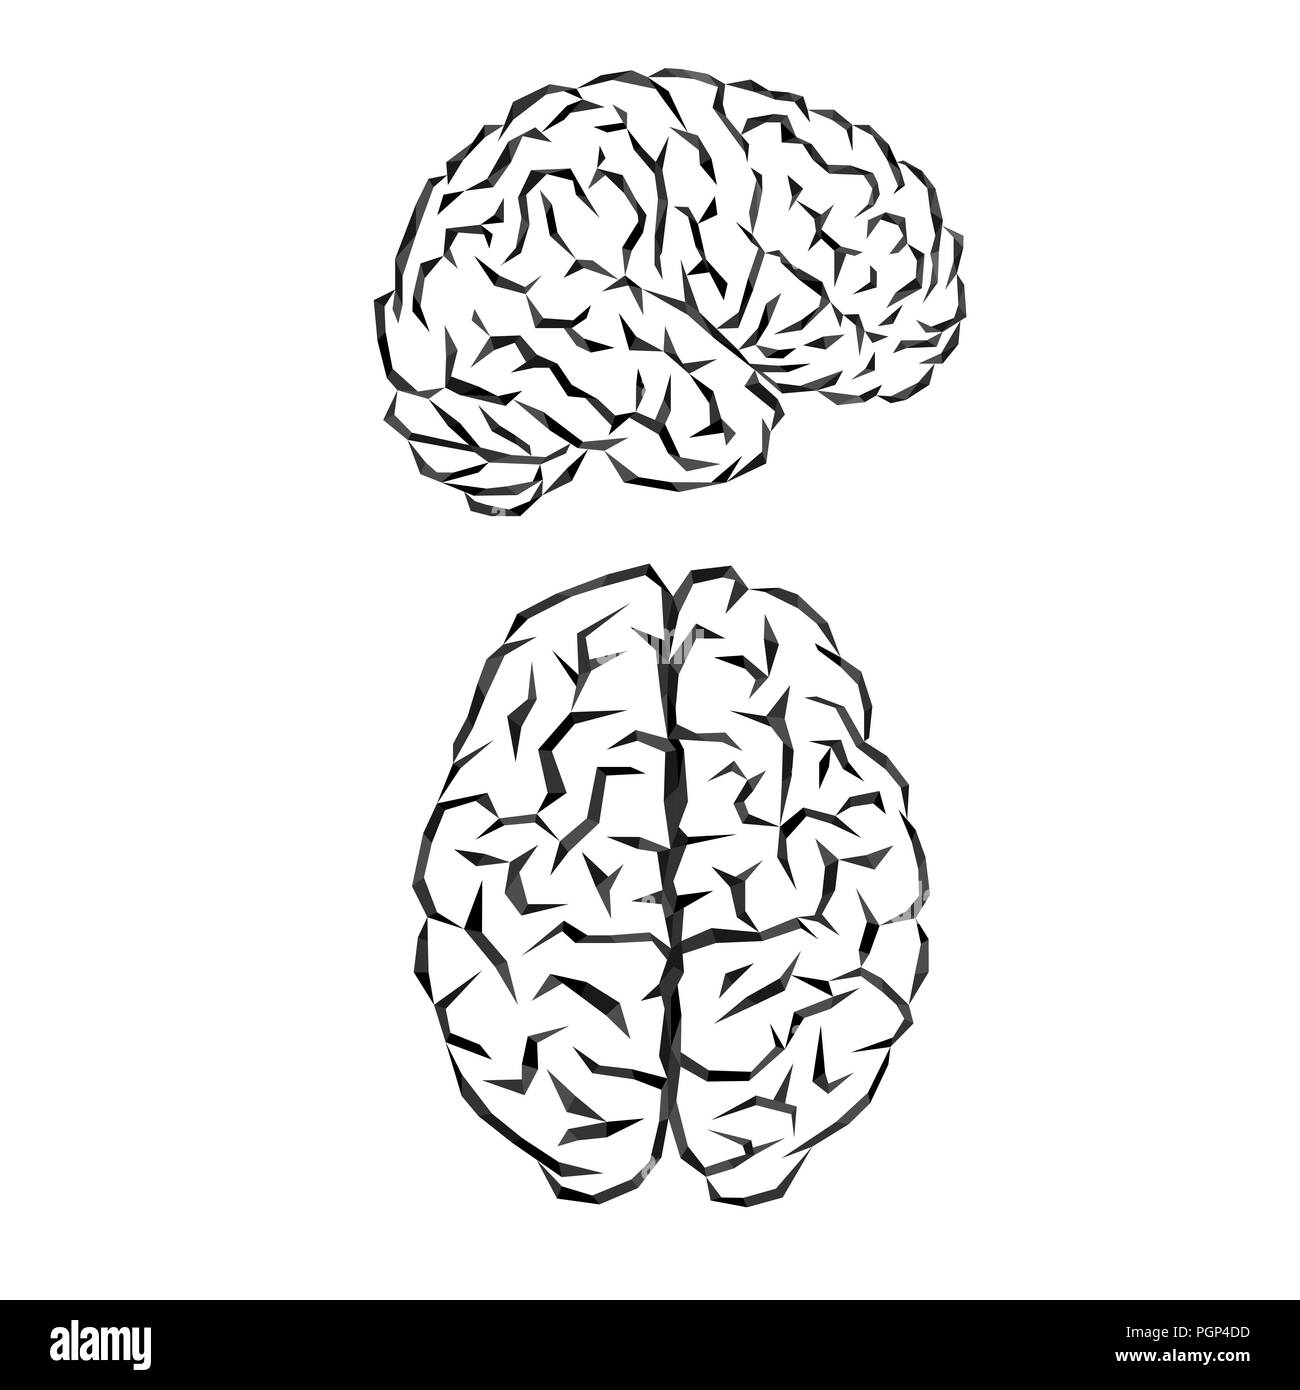 Black outline silhouette of human brain on white background - Stock Image